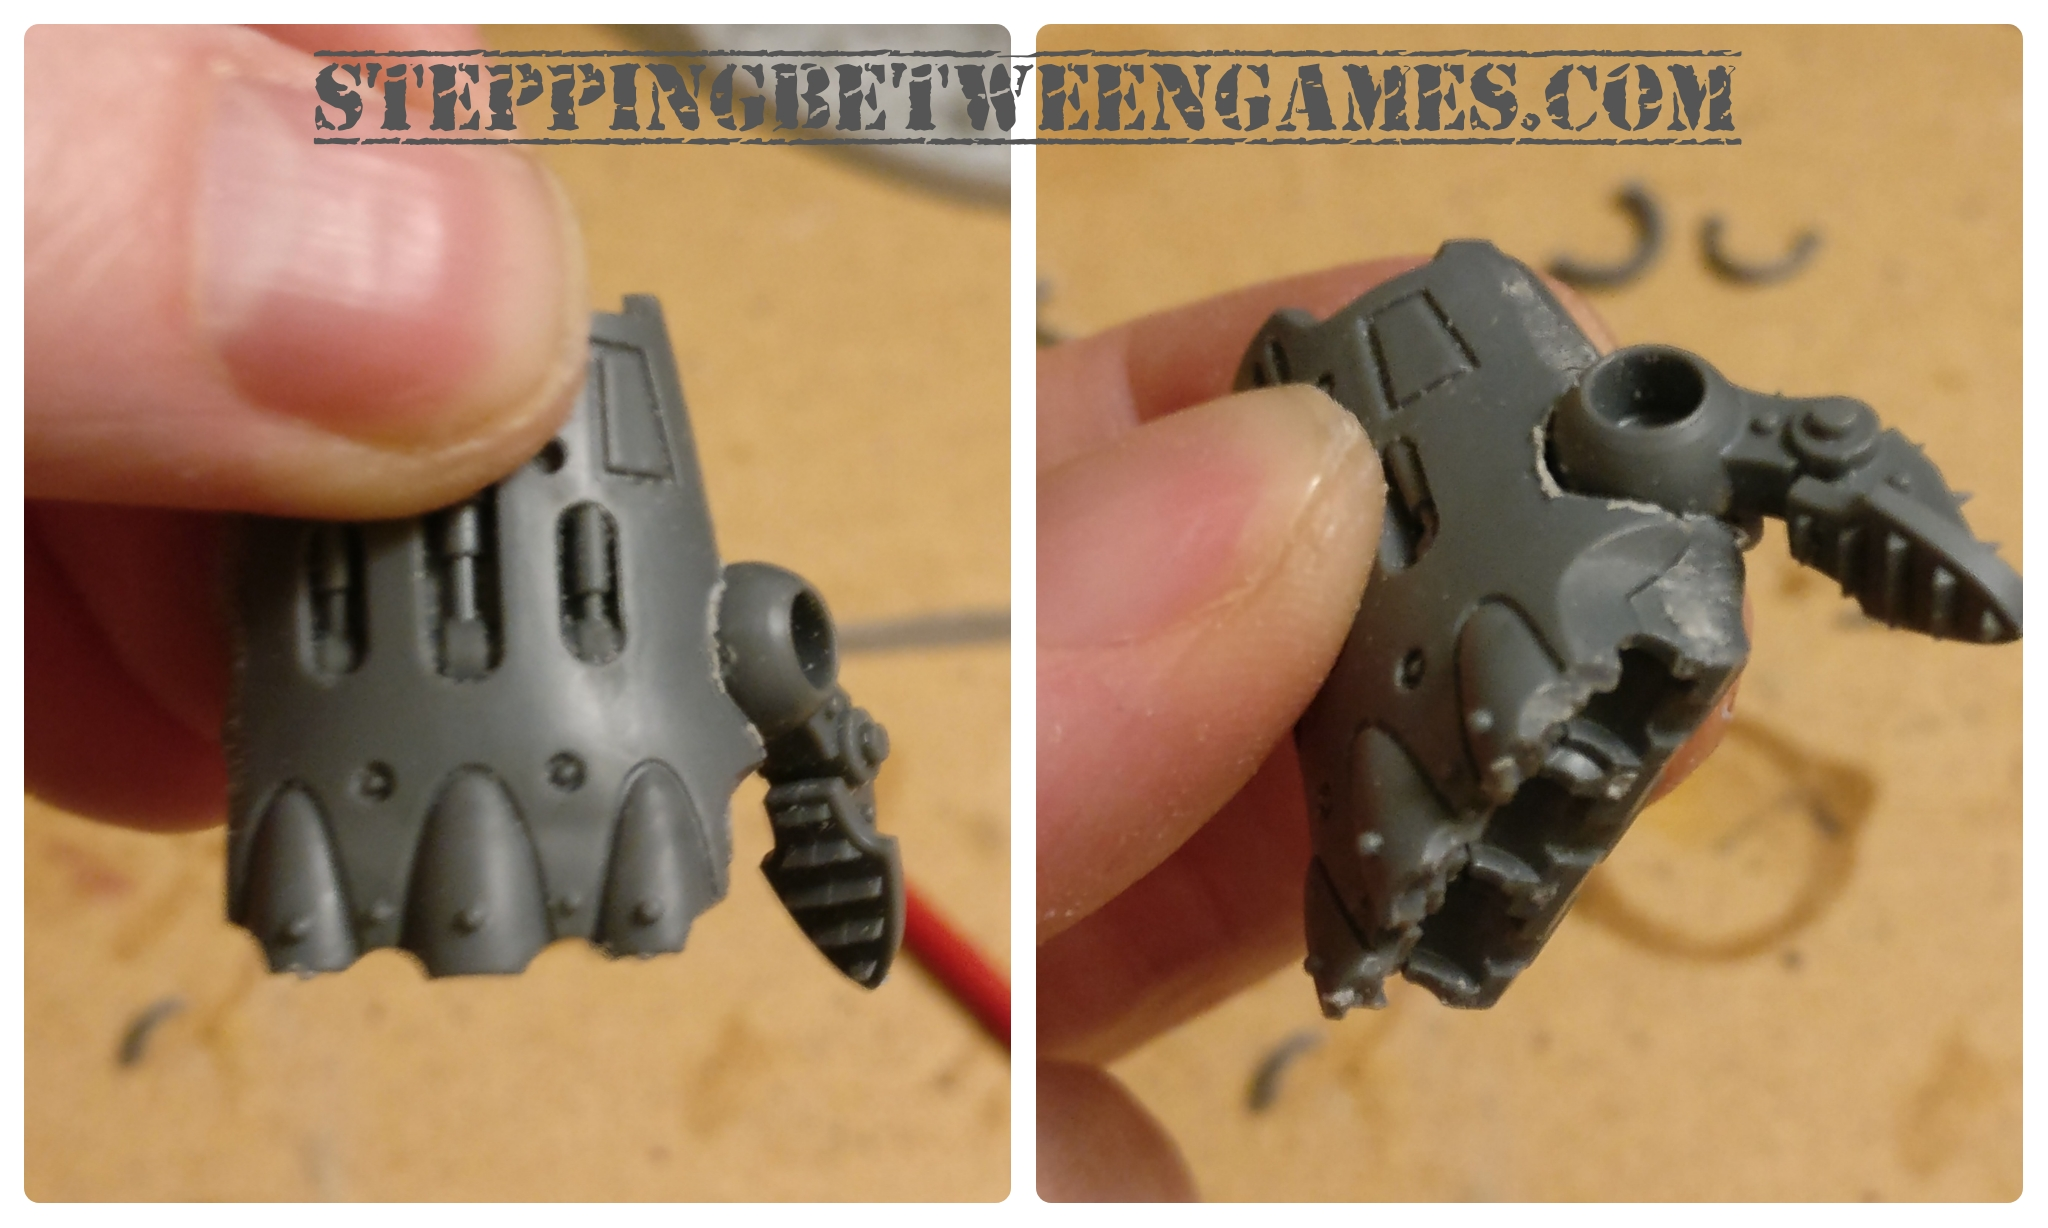 Thunderstrike gauntlet right hand conversion - thumb inserted